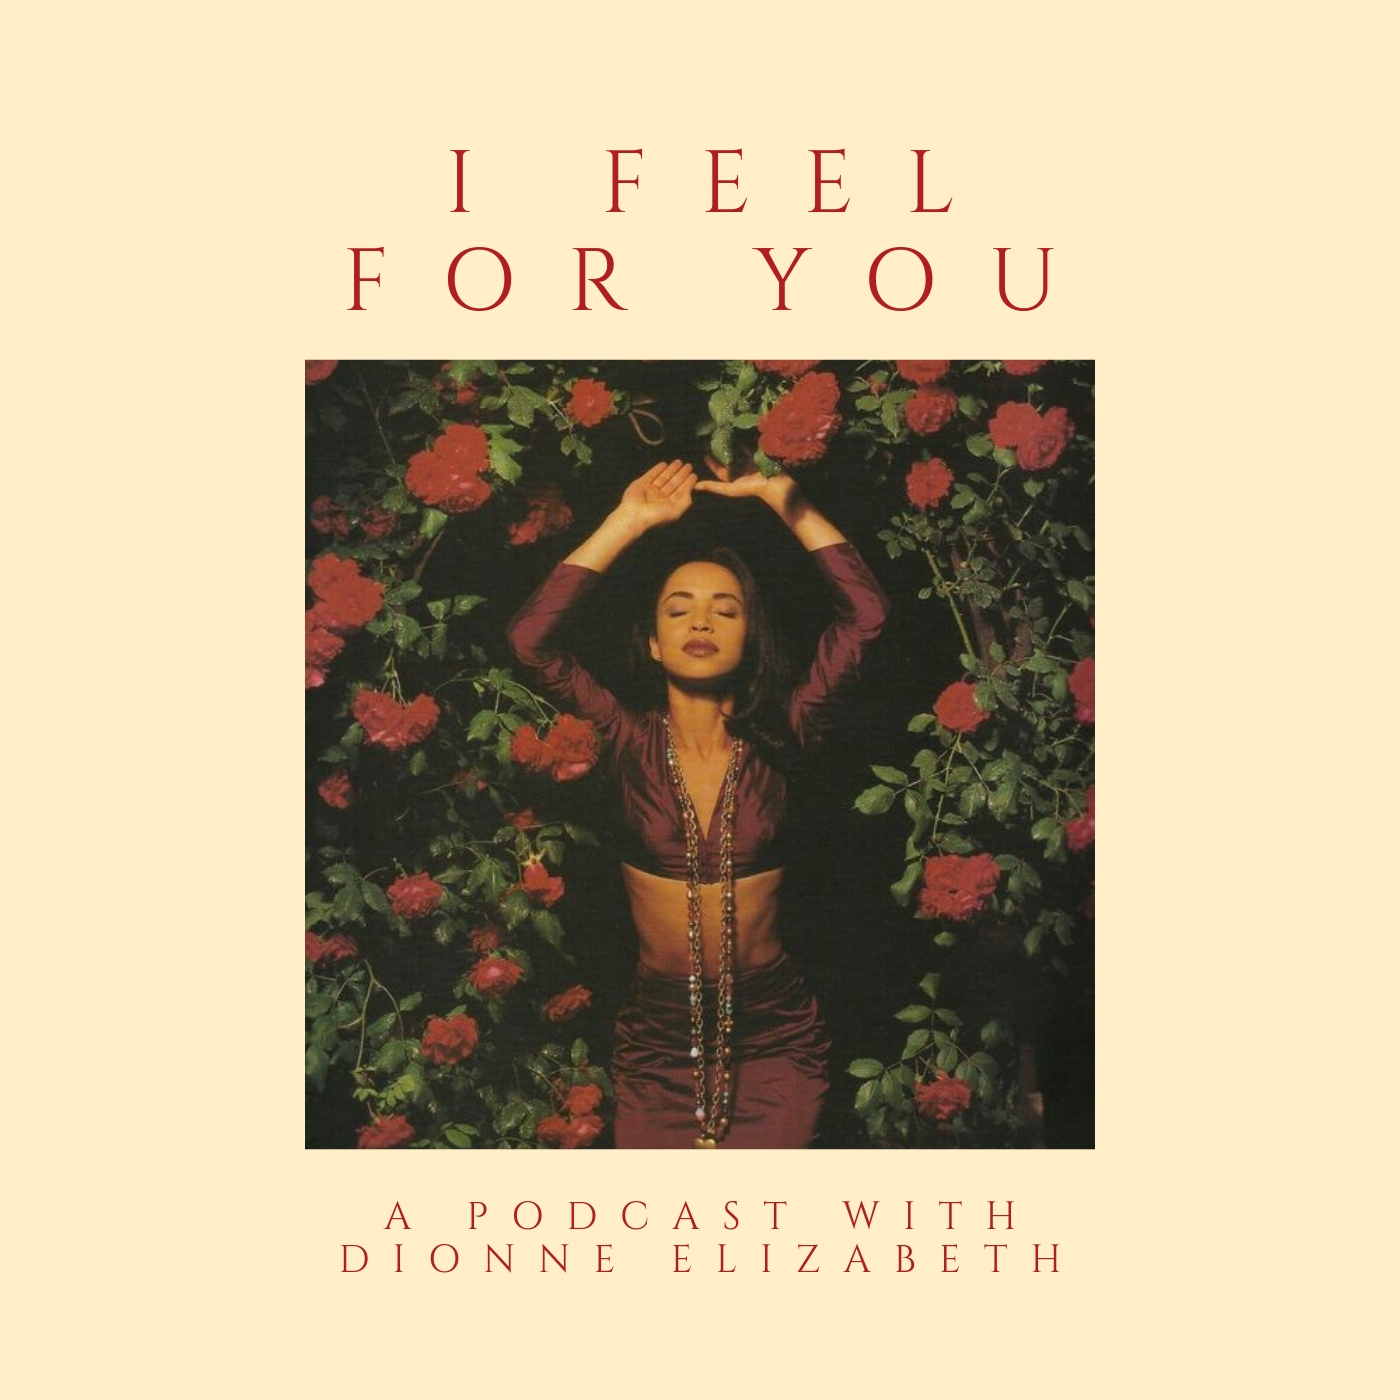 I Feel For You podcast episode 29